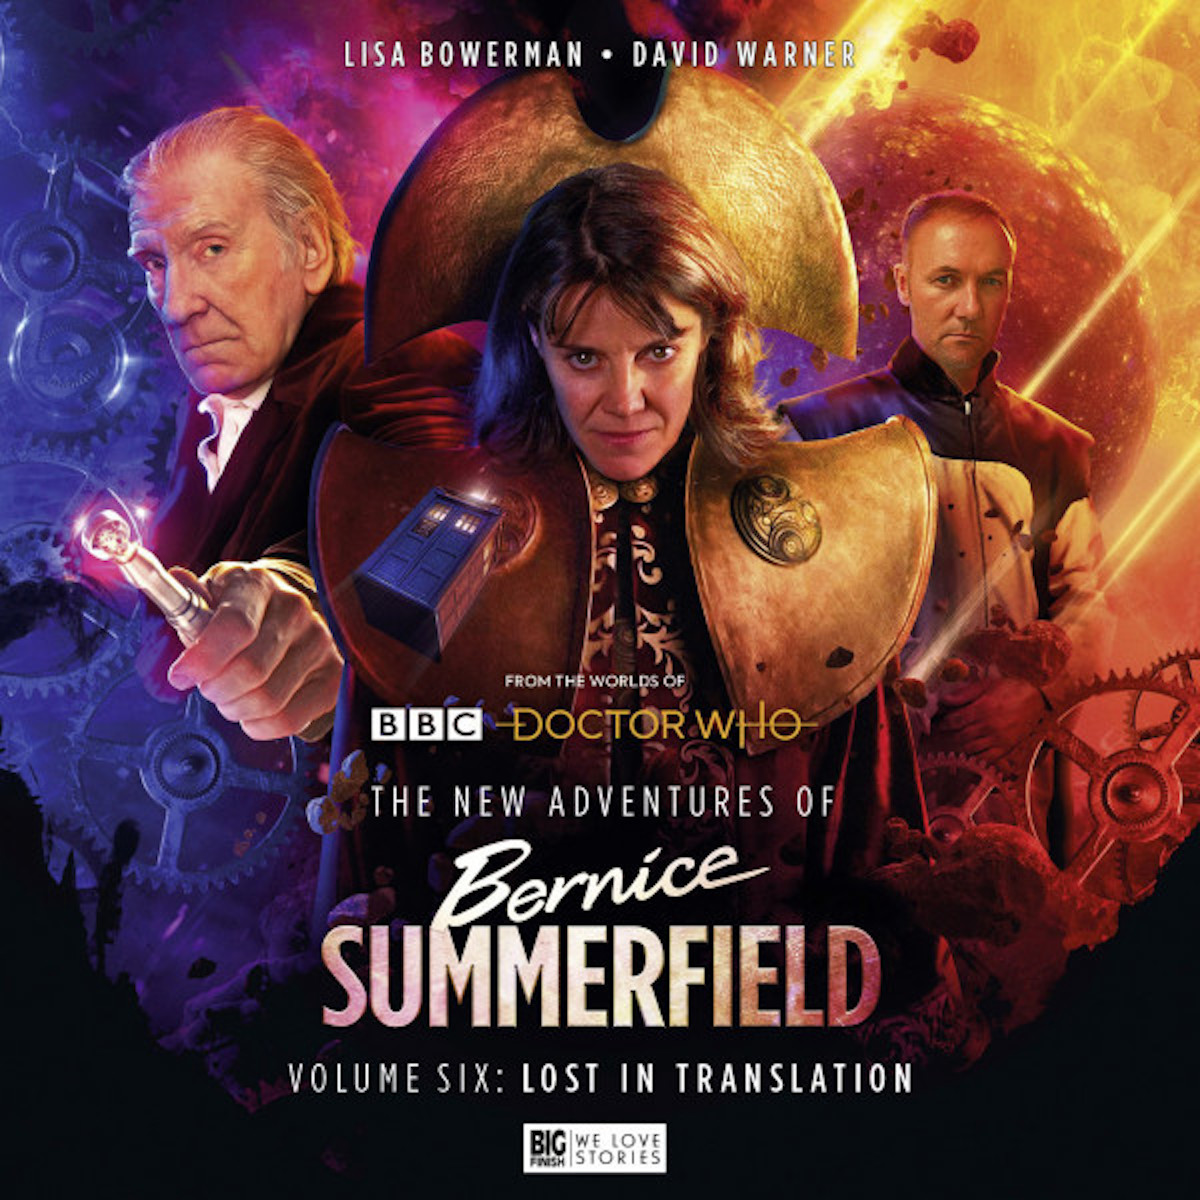 The New Adventures of Bernice Summerfield - Volume Six: Lost in Translation